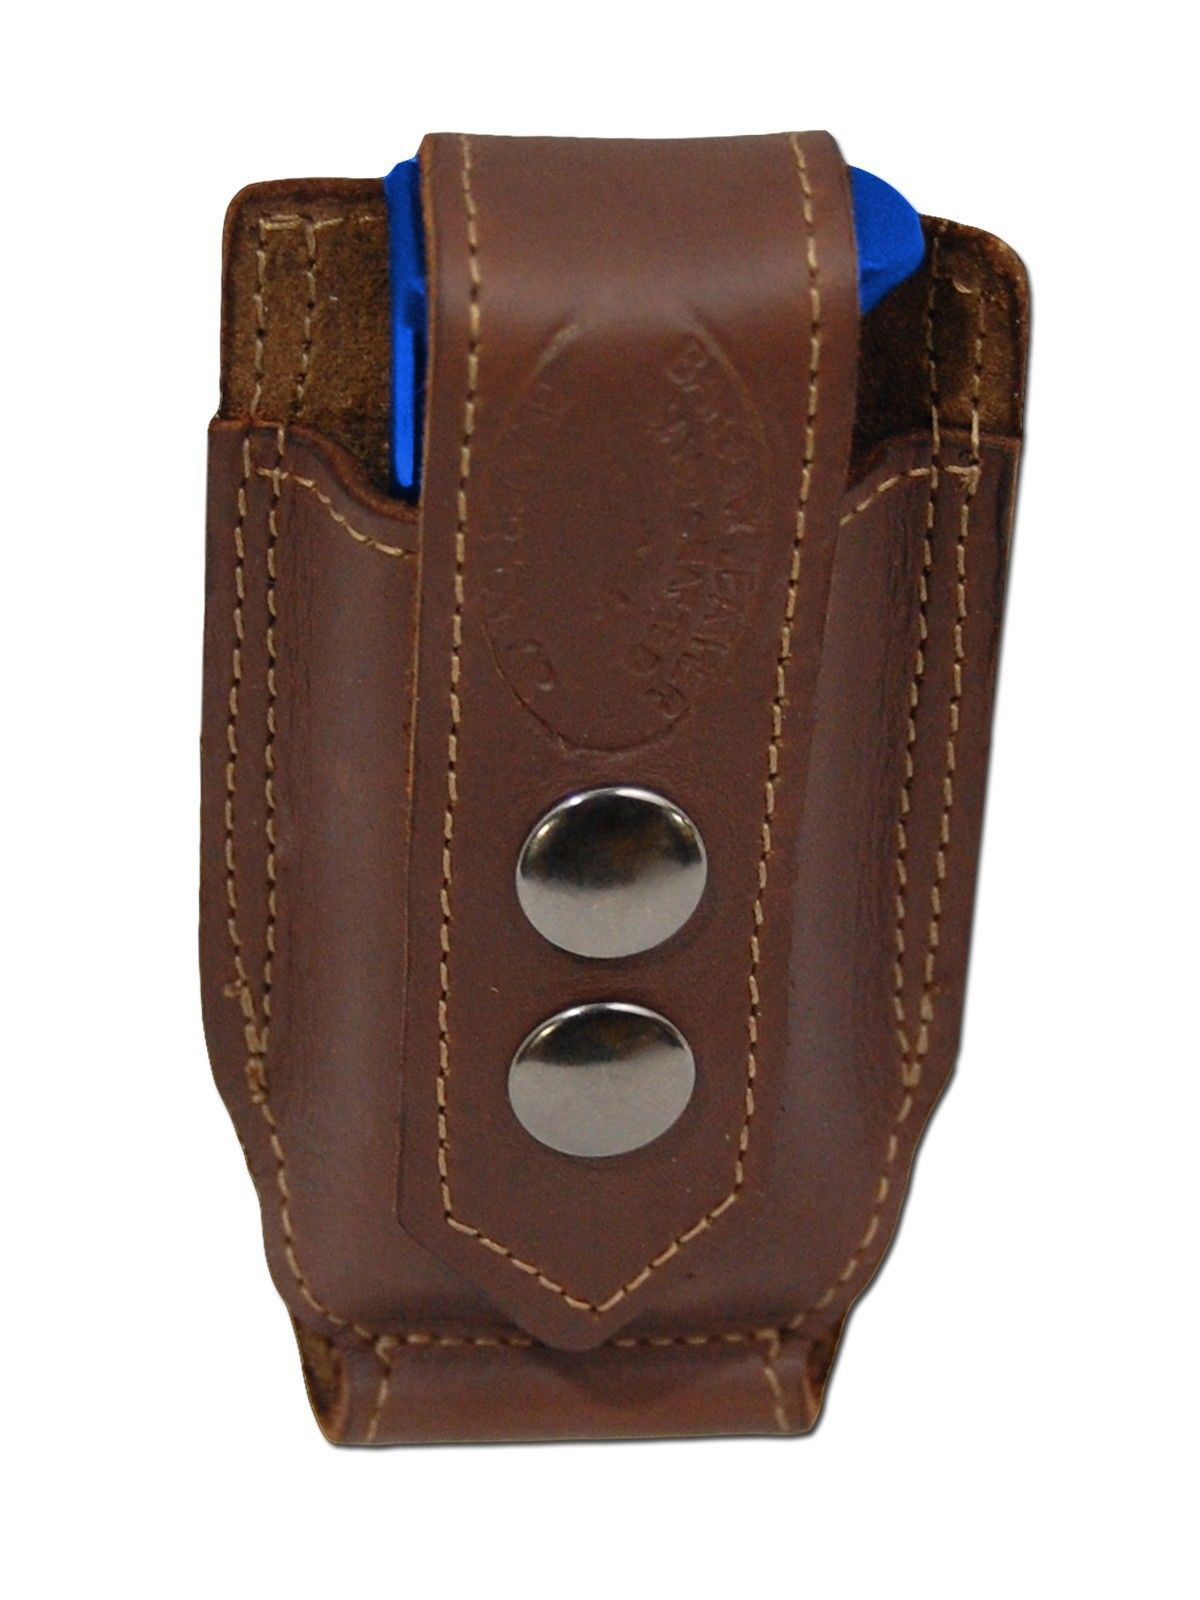 NEW Barsony Brown Leather Single Mag Pouch for Cobra, EAA Mini/Pocket 22 25 380